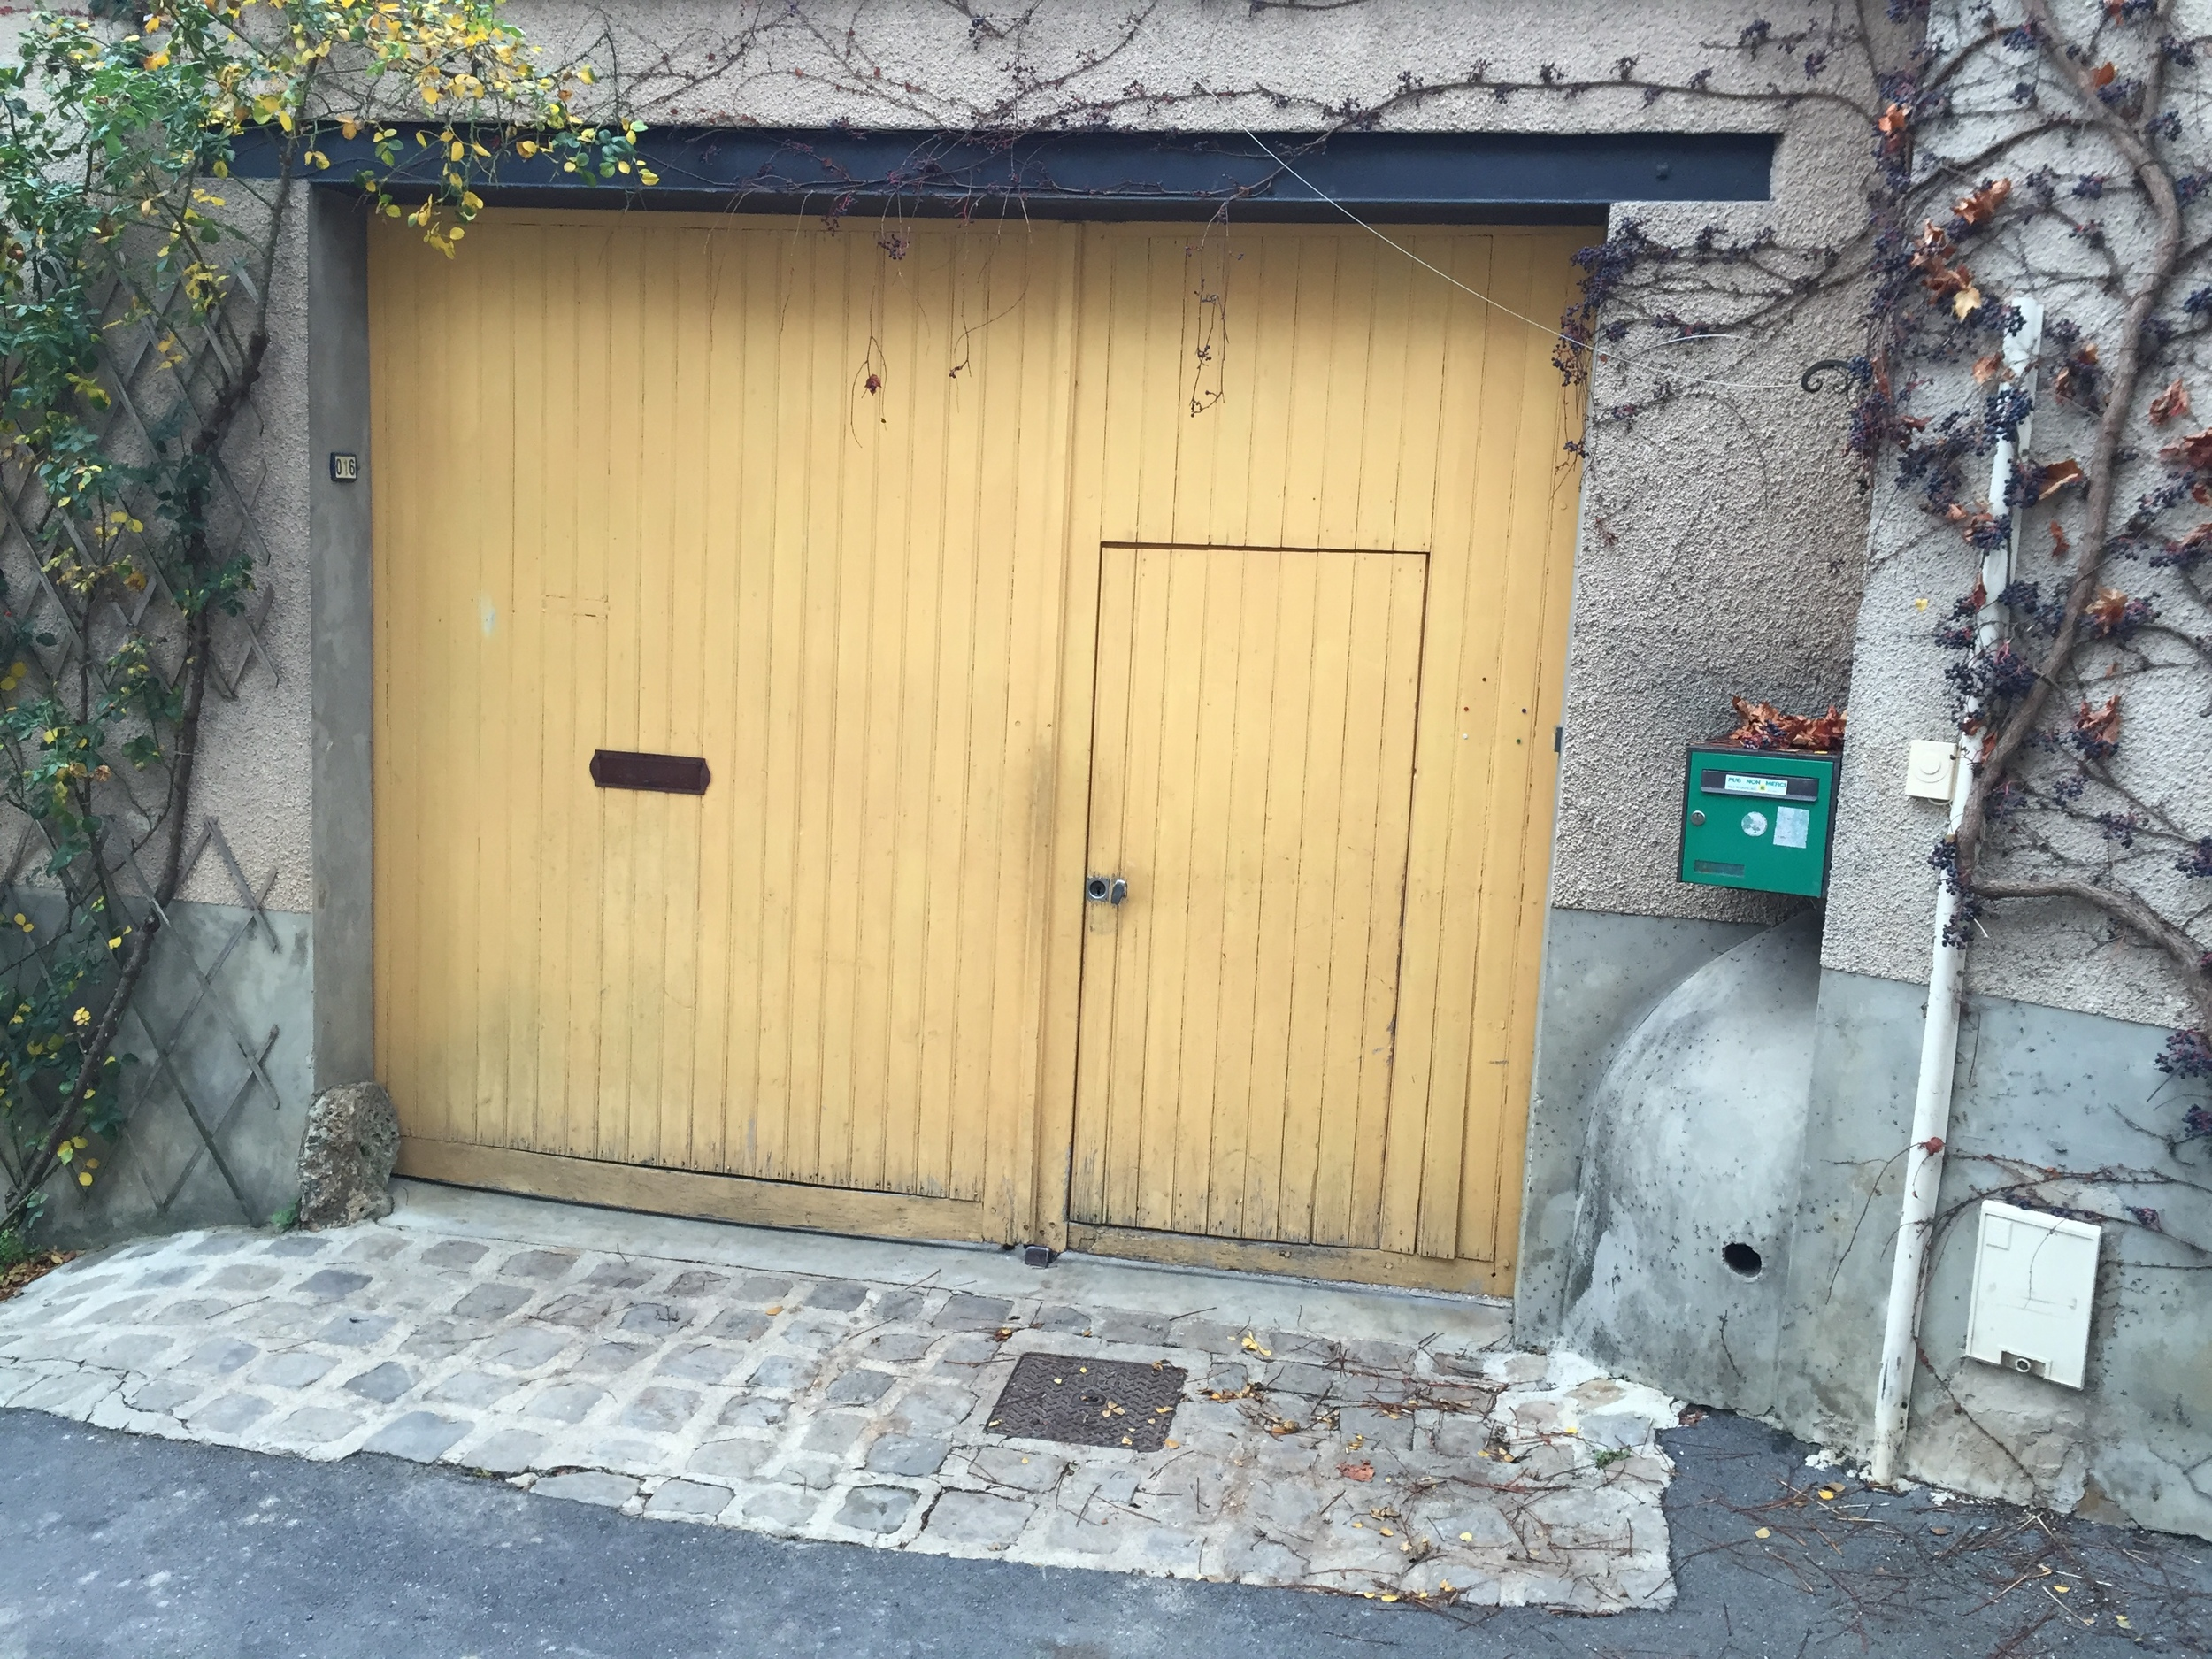 The gates to heaven - the unmarked entrance to Champagne Georges Laval